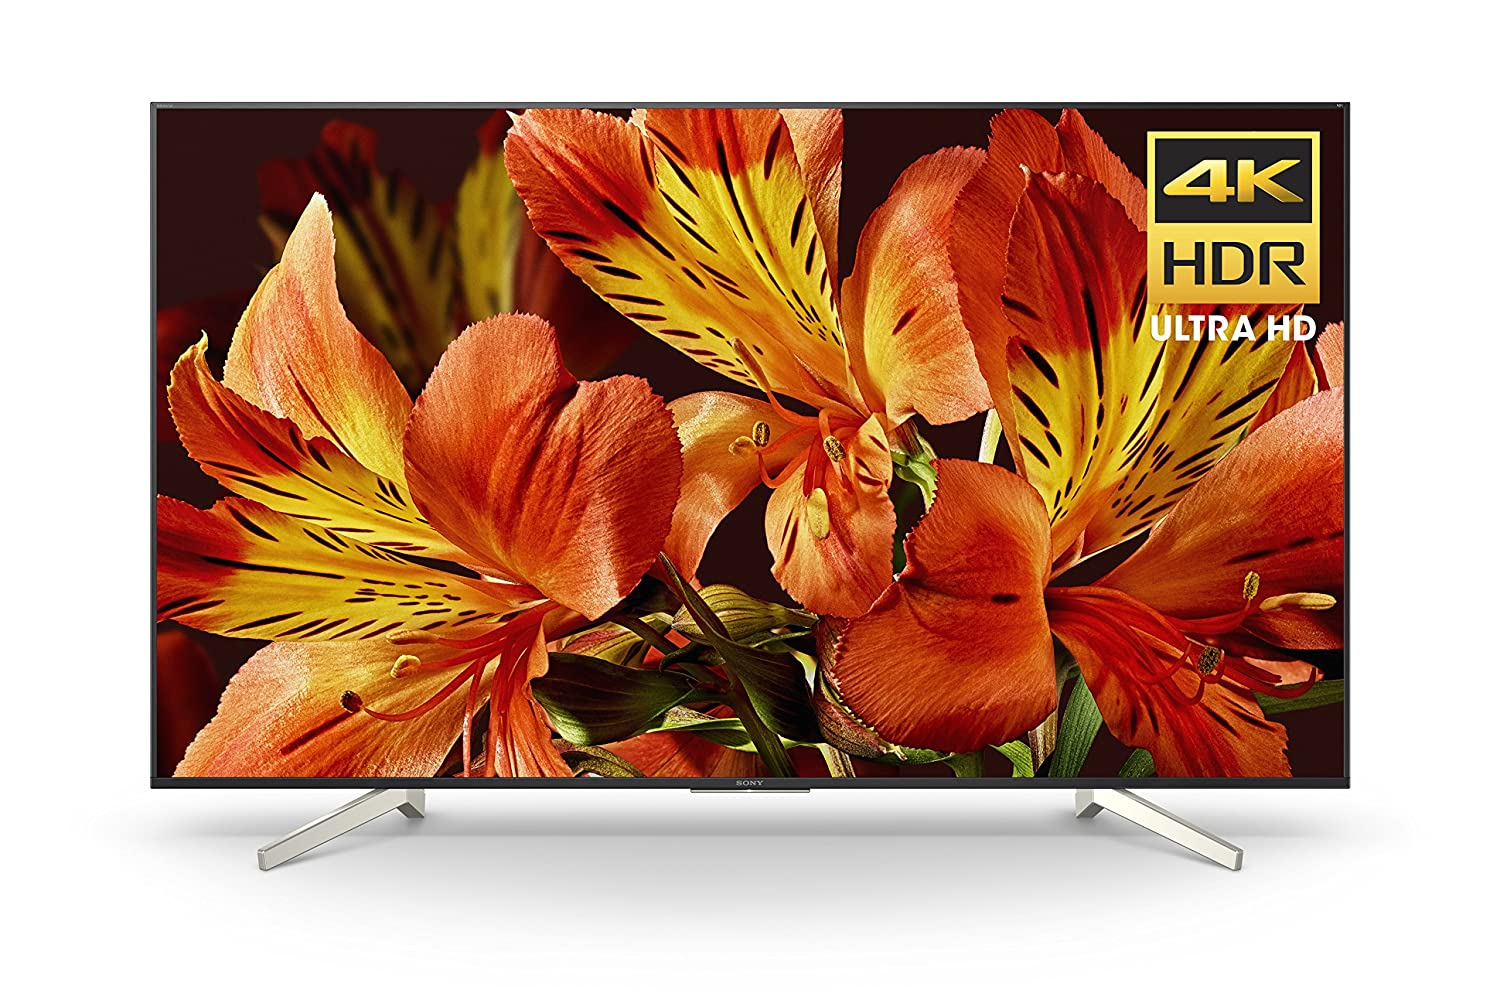 Sony XBR65X850F 65-Inch 4K Ultra HD Smart LED TV Black Friday Deals 2019